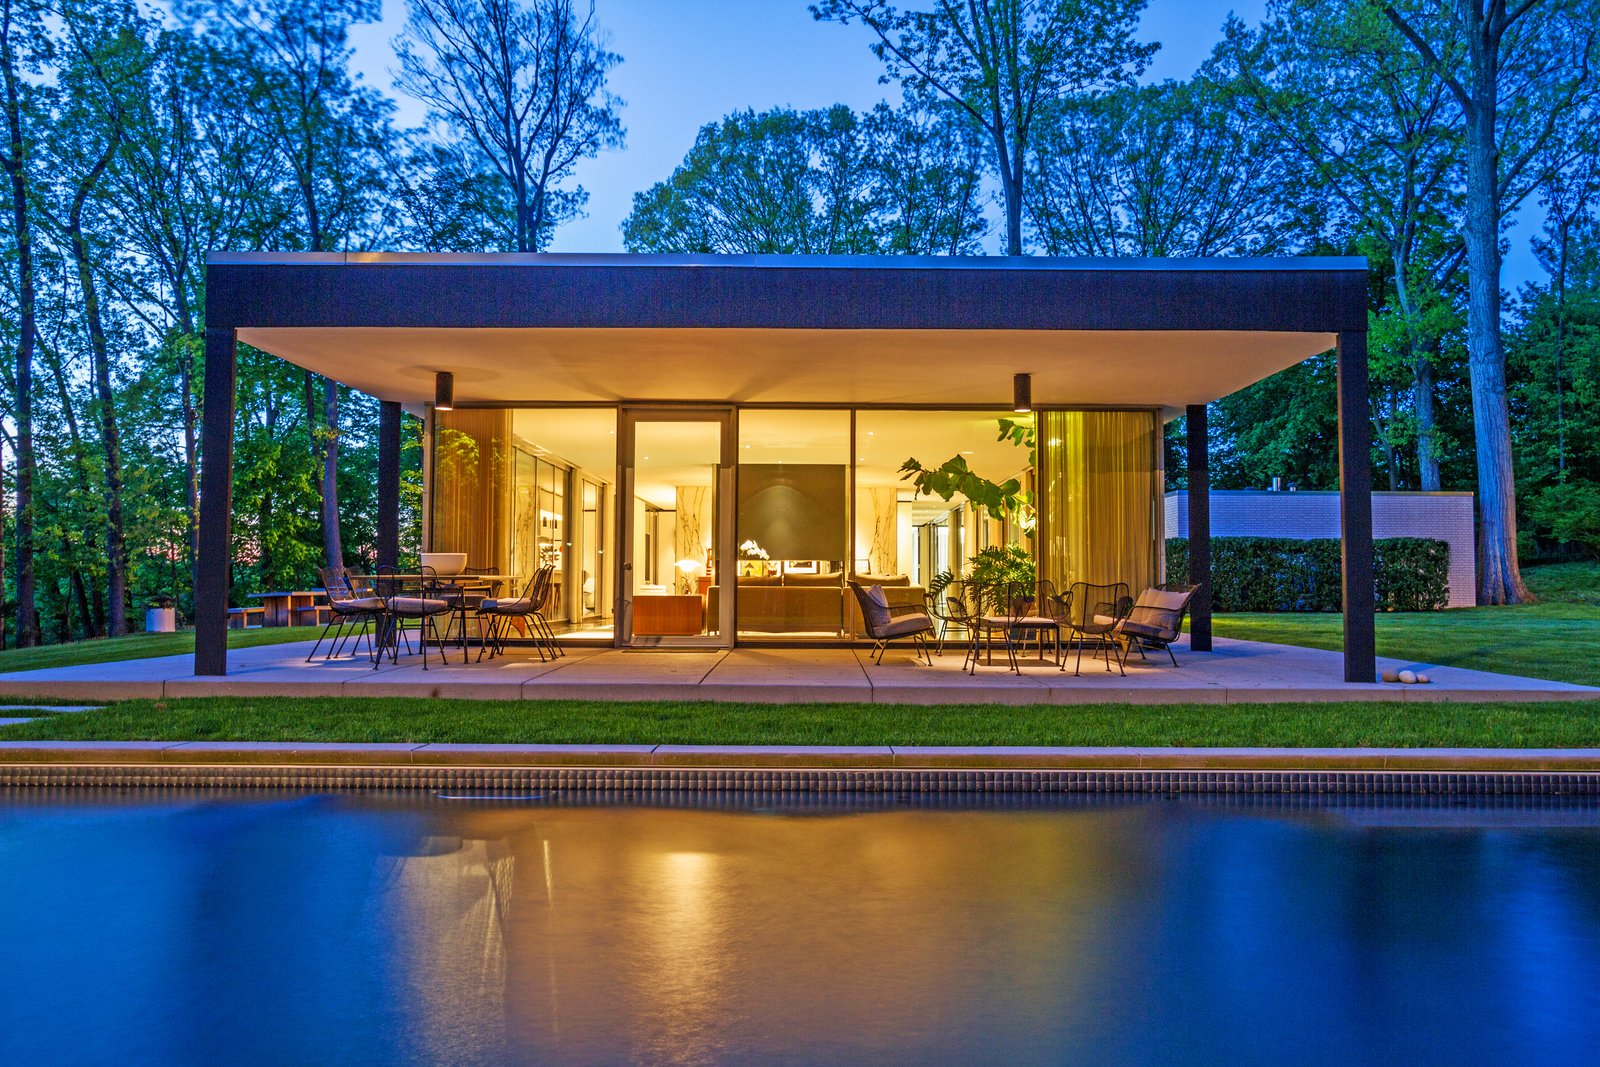 Briarcliff Manor Modern Home In Briarcliff Manor New York